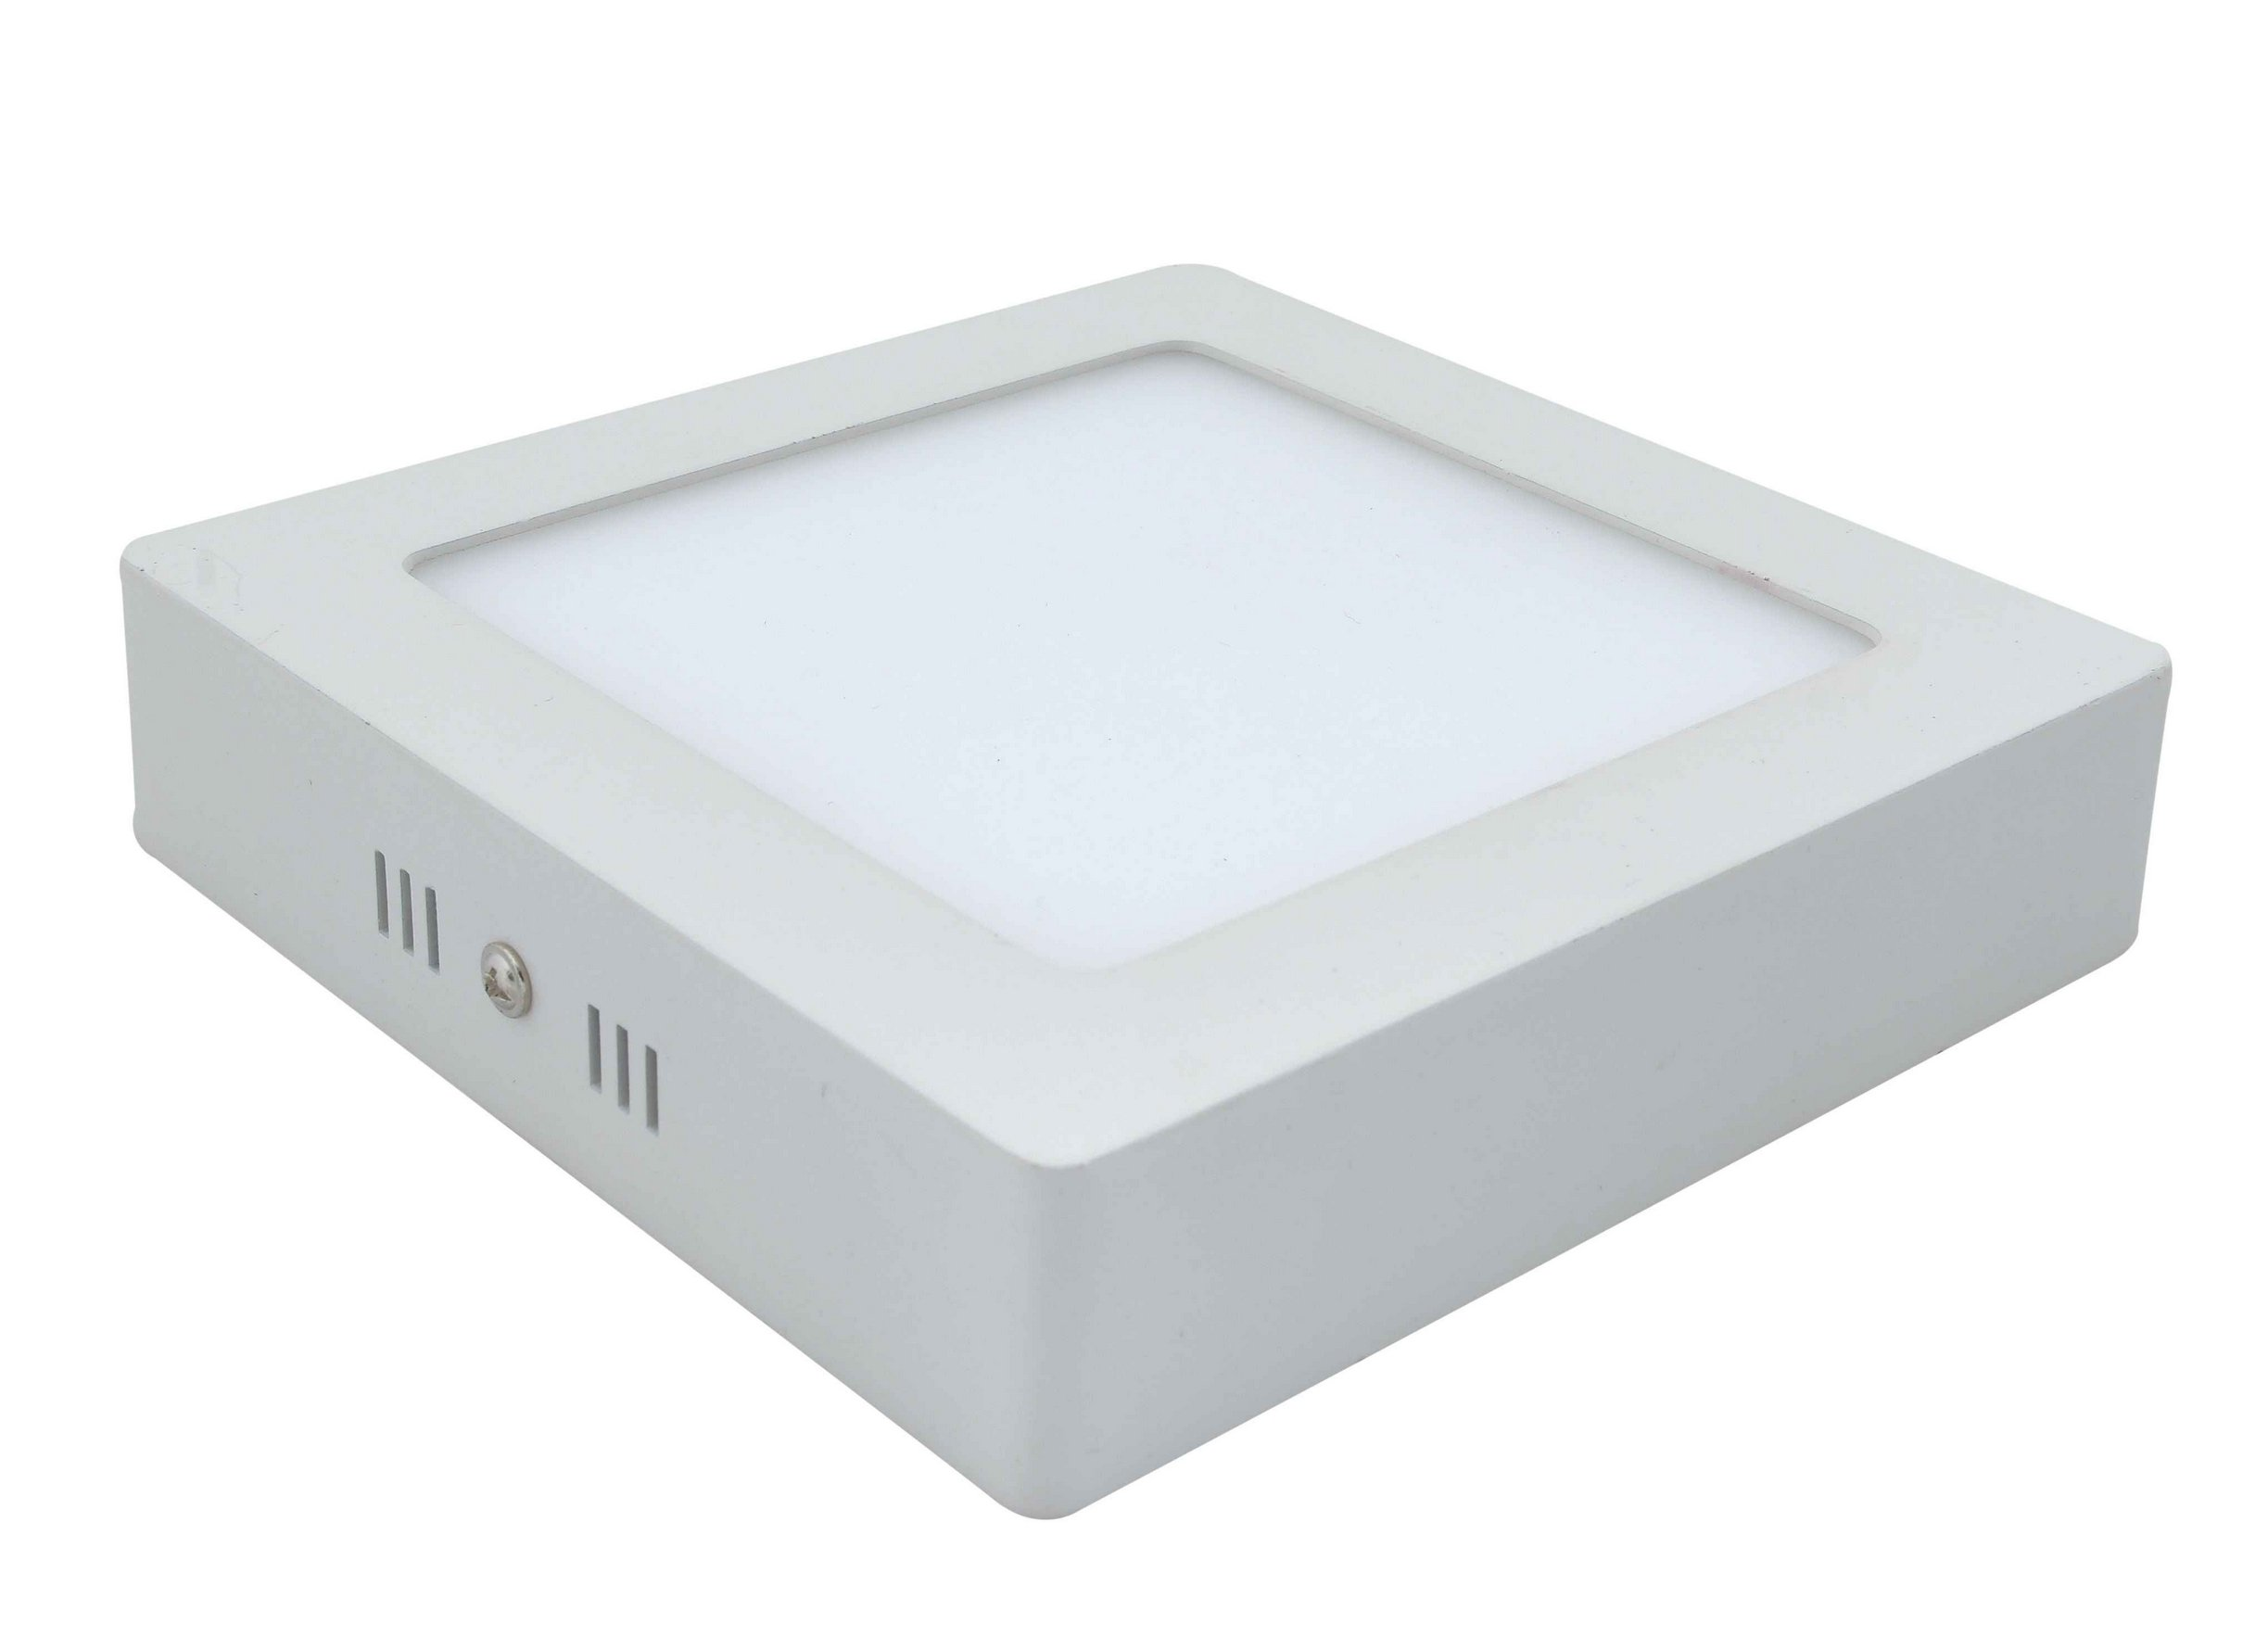 Plafón LED Cuadrado 12W 4000K Blanca Neutra Superficie product image